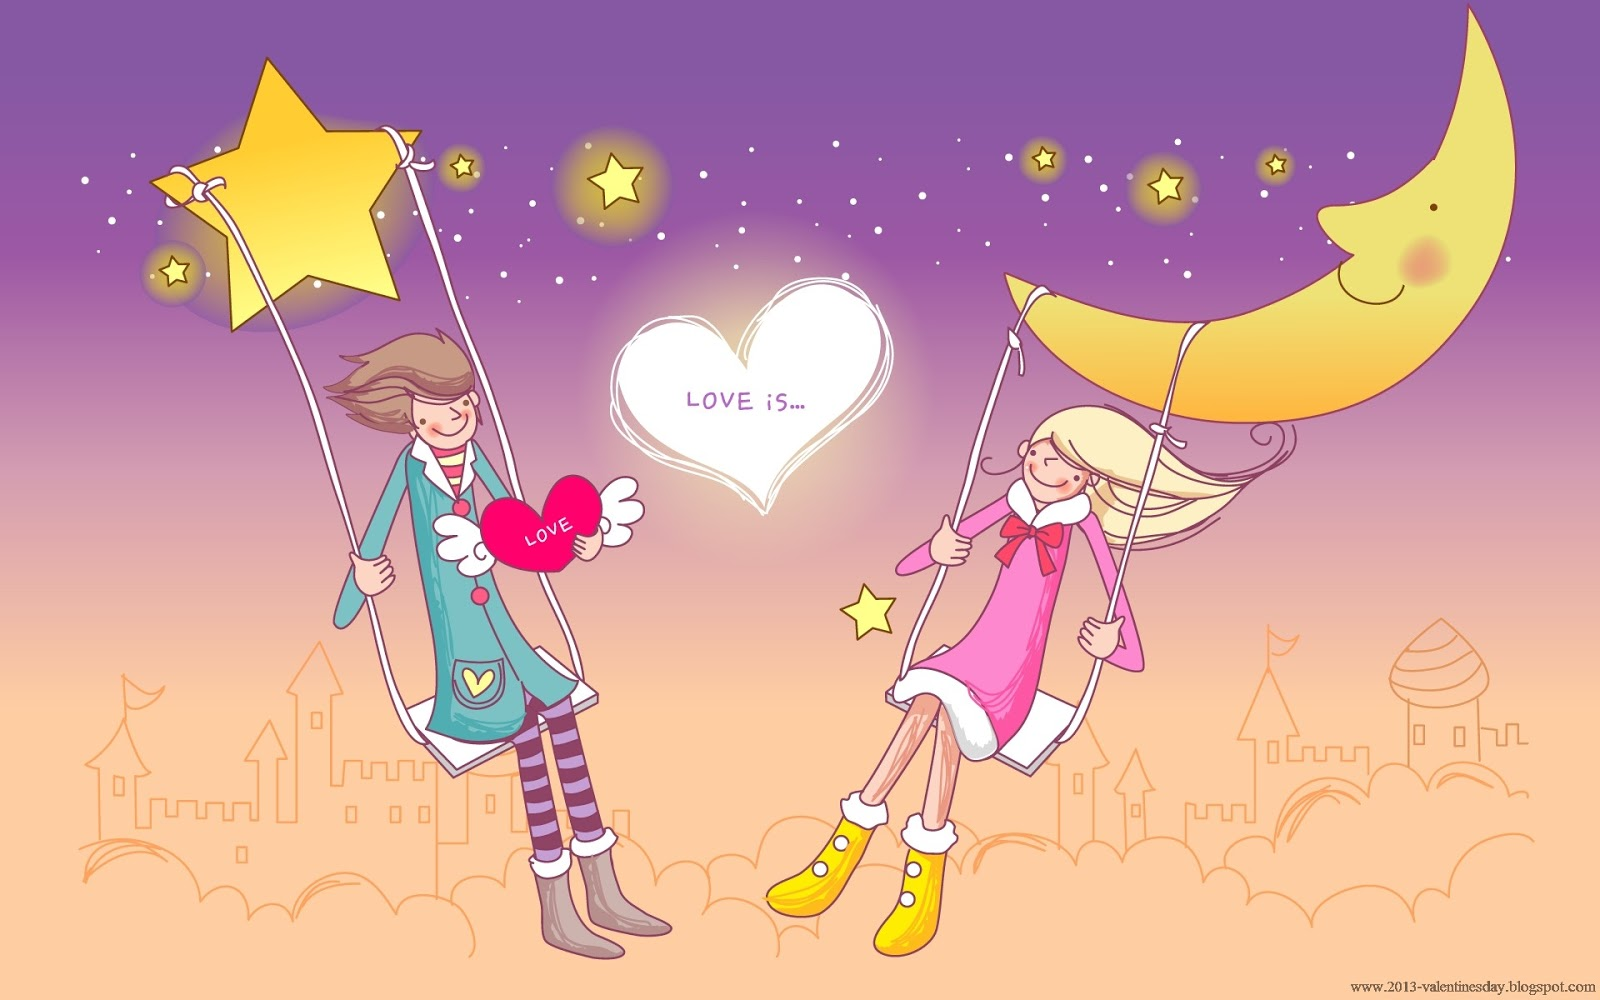 Sweet Love cartoon Wallpaper : cute cartoon couple Love Hd wallpapers for Valentines day Online Quotes Gallery